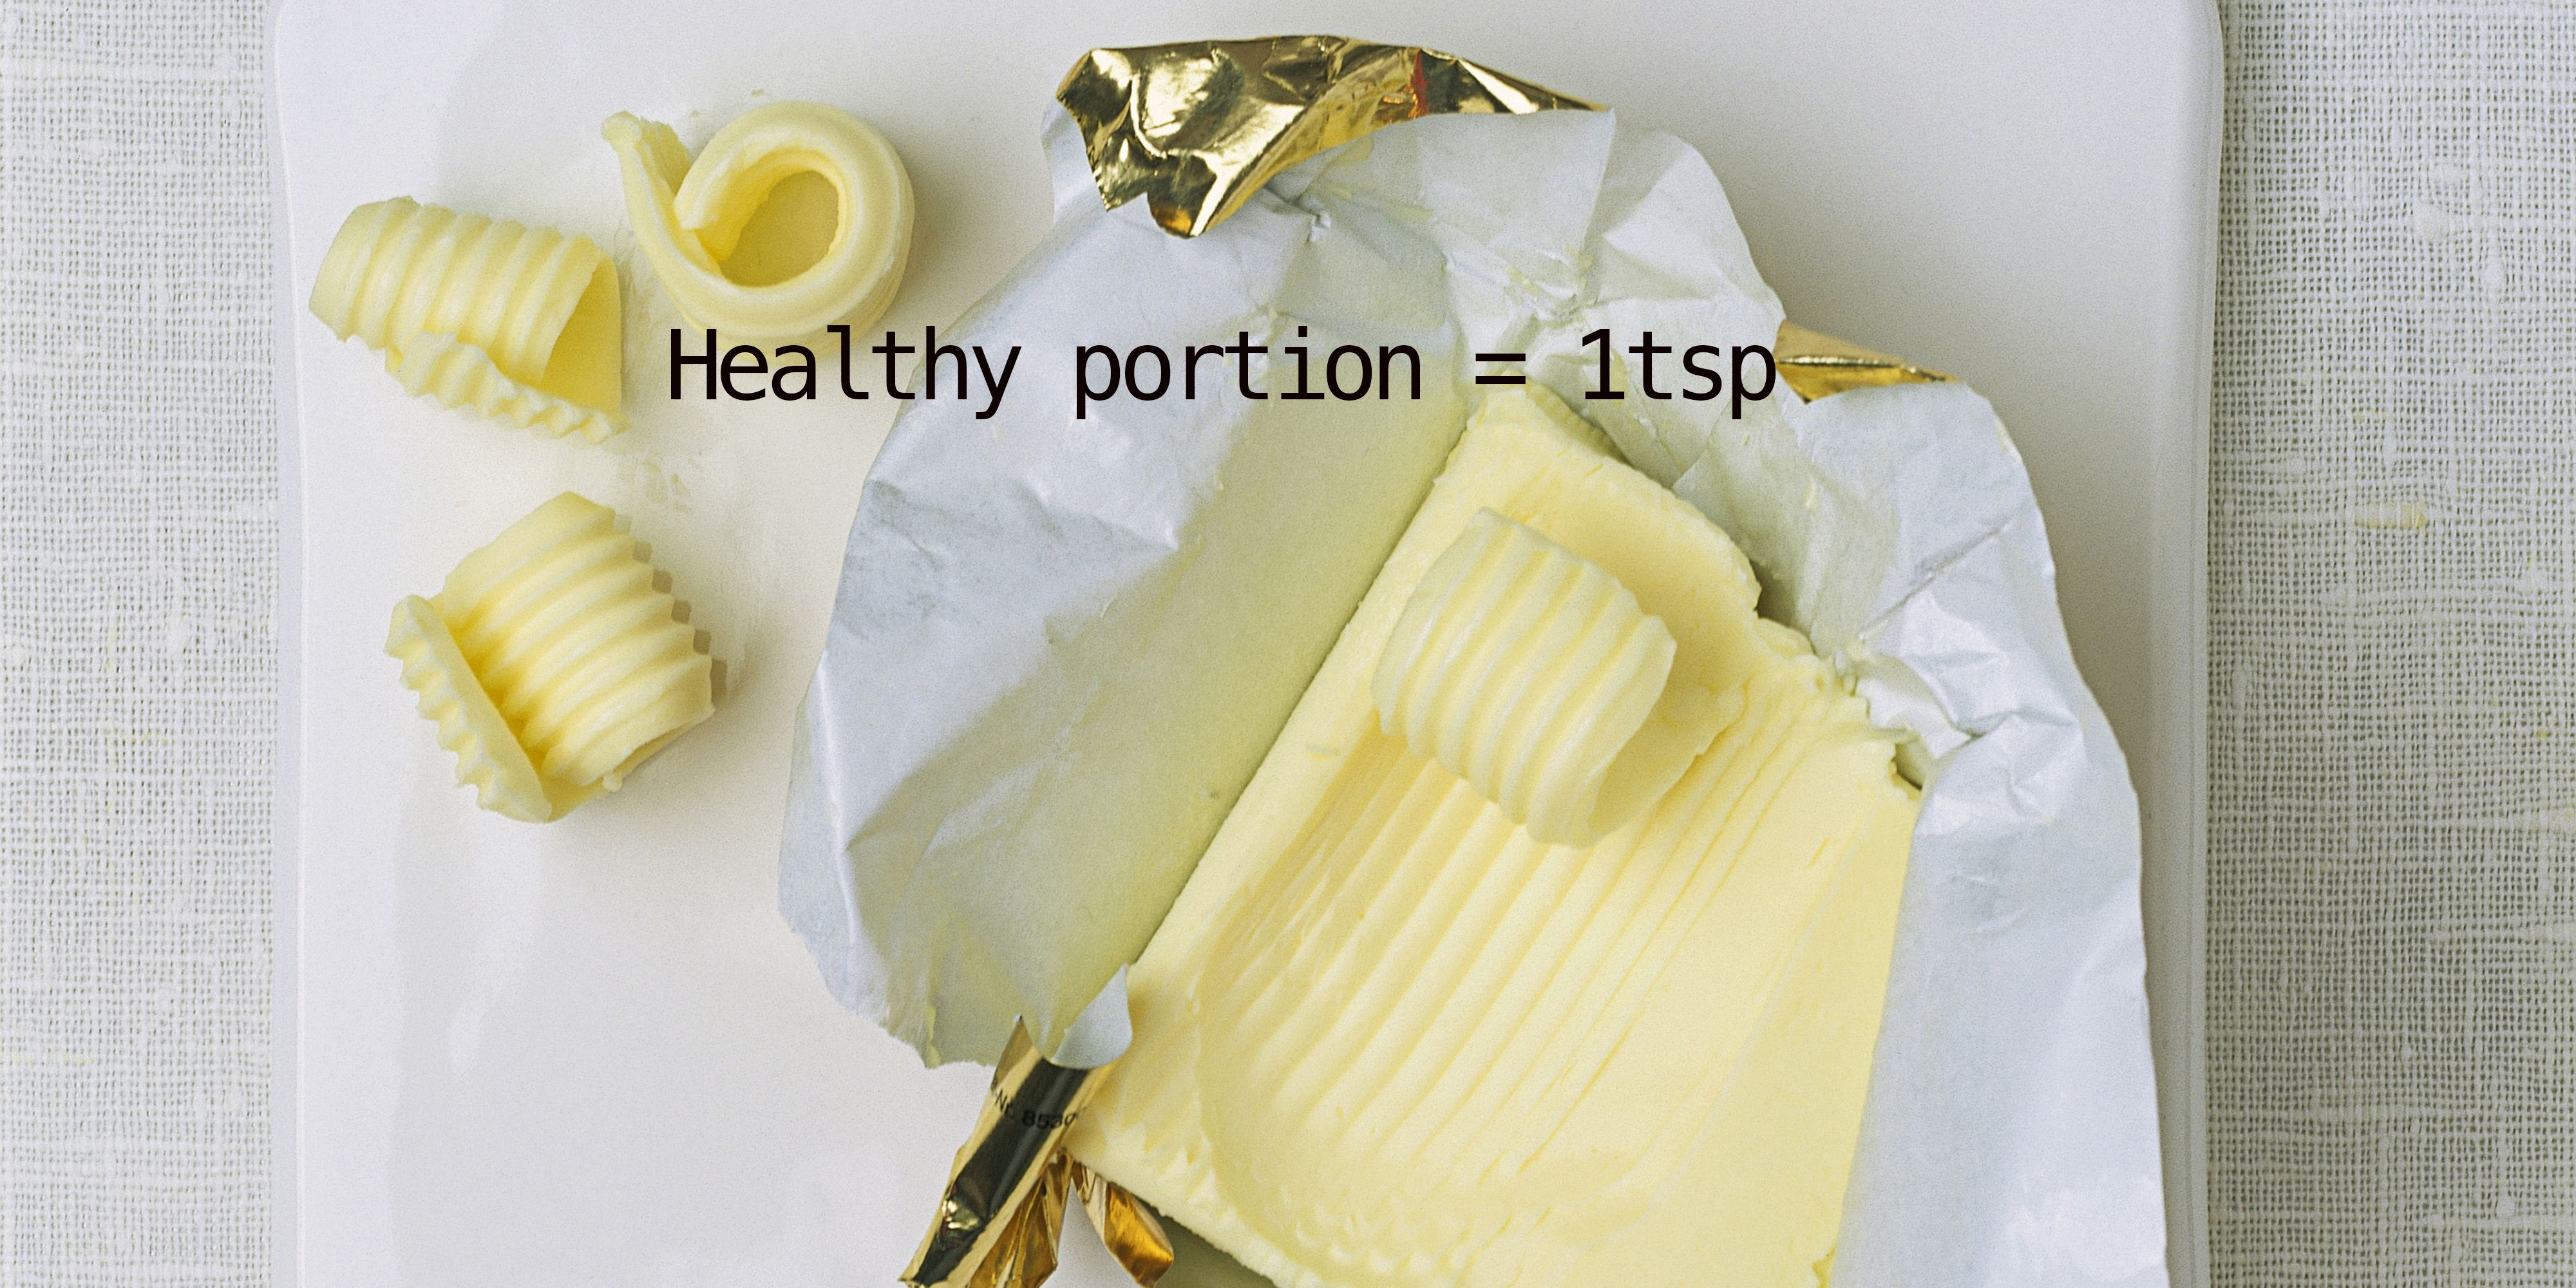 Health portion sizes for bread and butter